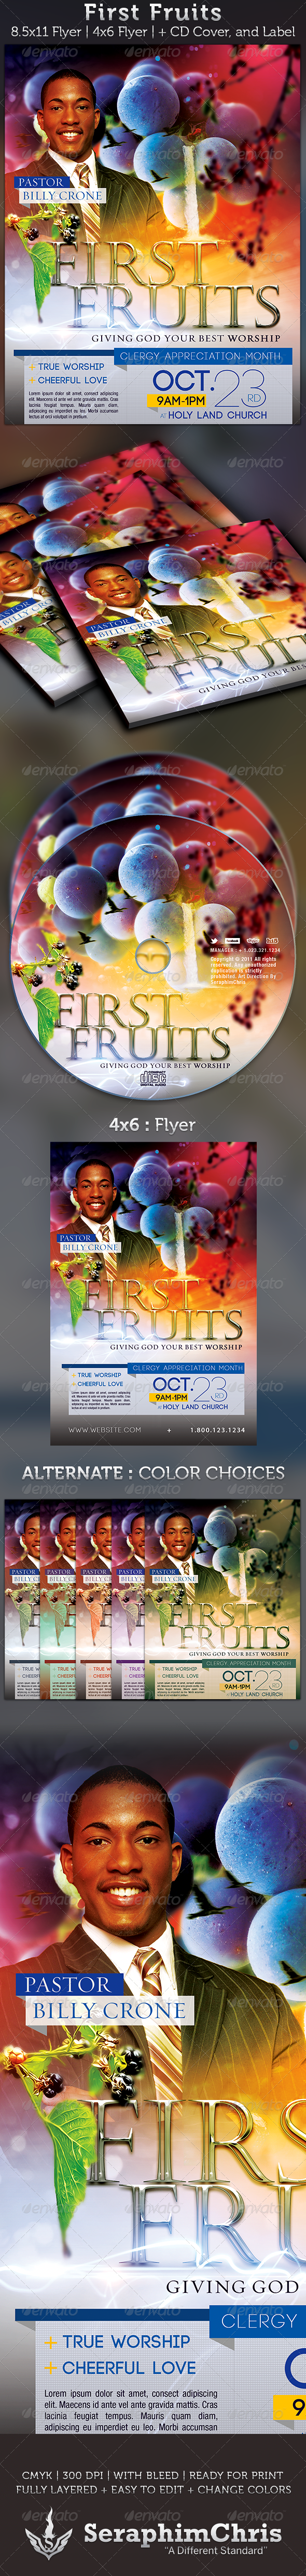 First Fruits Church Flyer and CD Cover Template